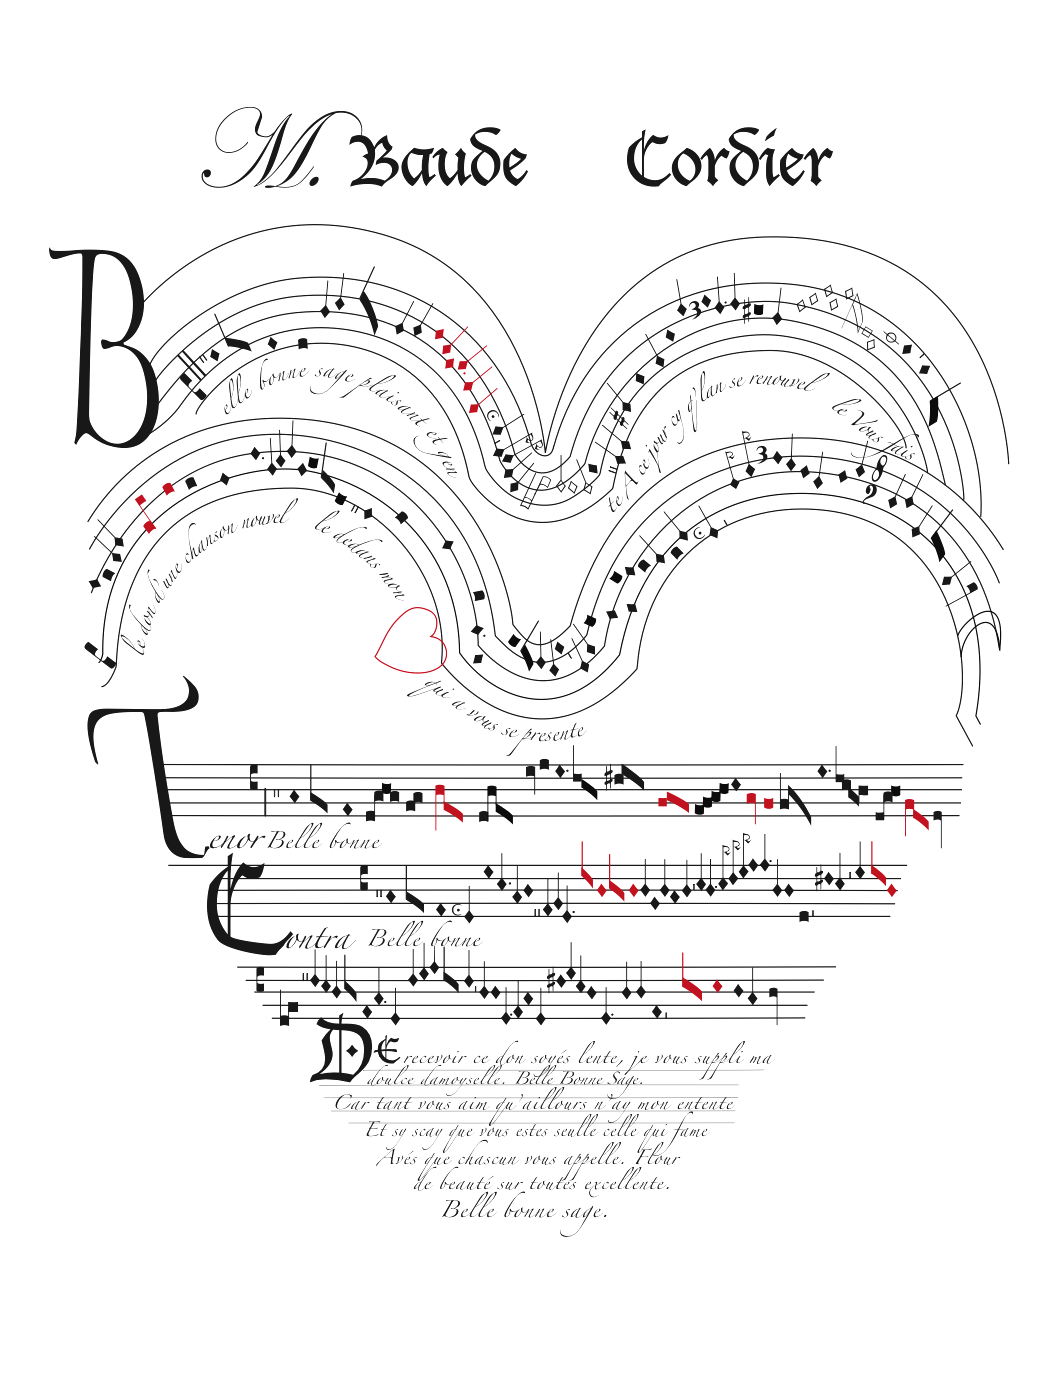 This is a copy of Baude Cordier's famous